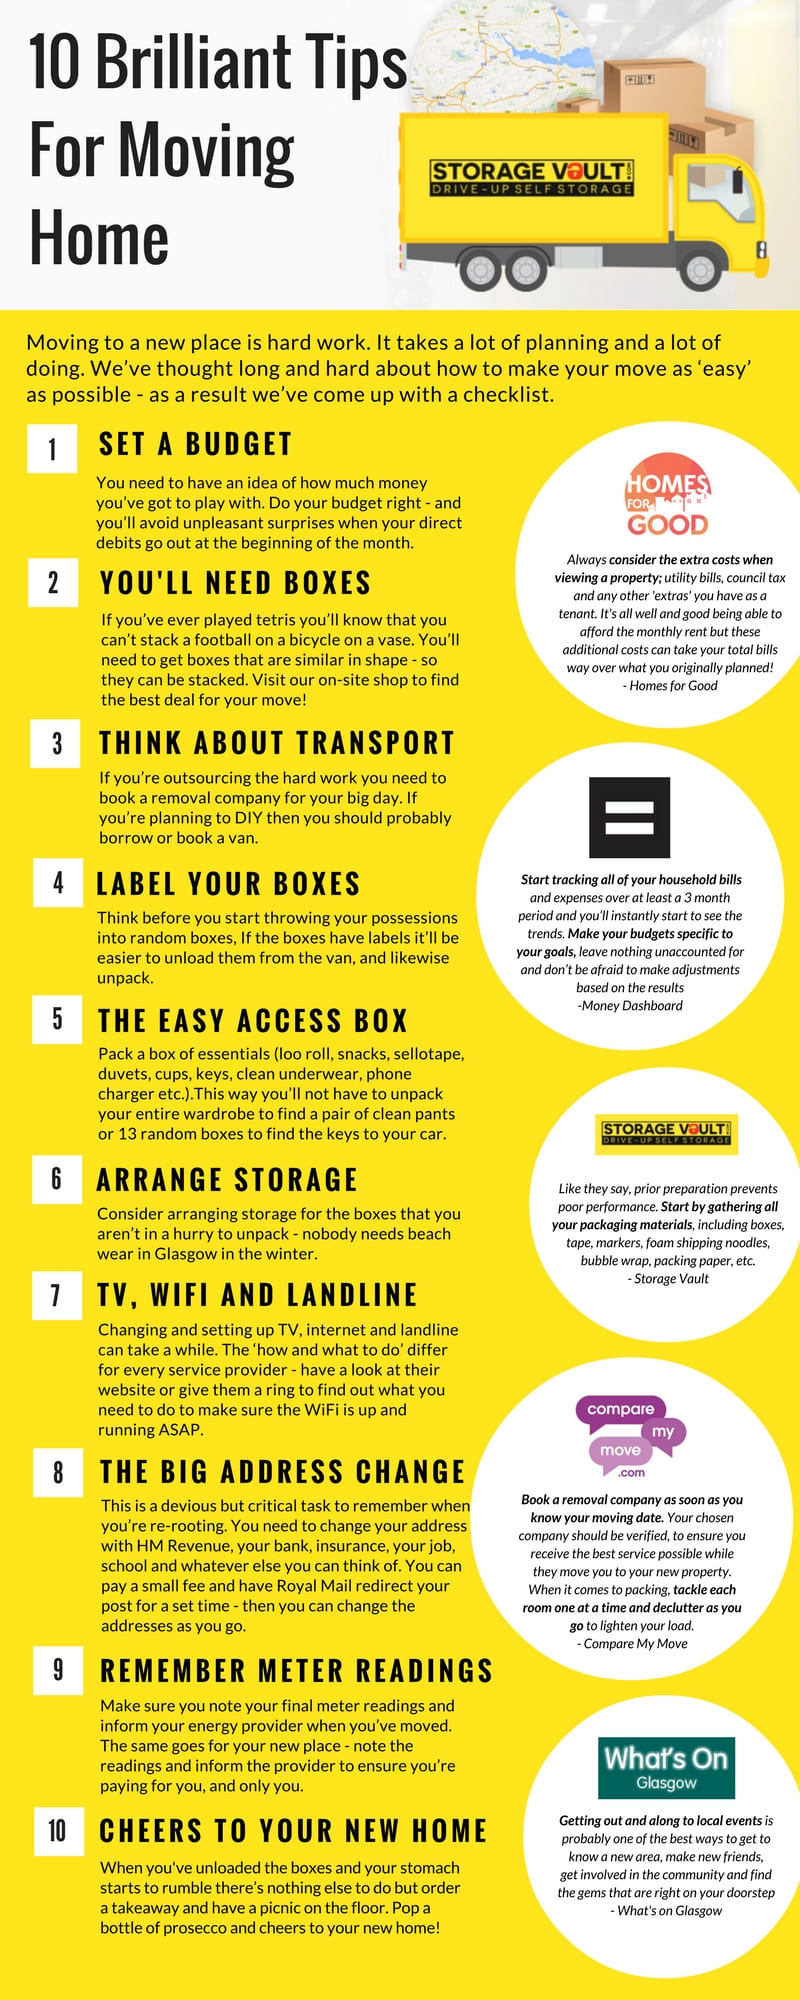 10 tips storage vault infographic